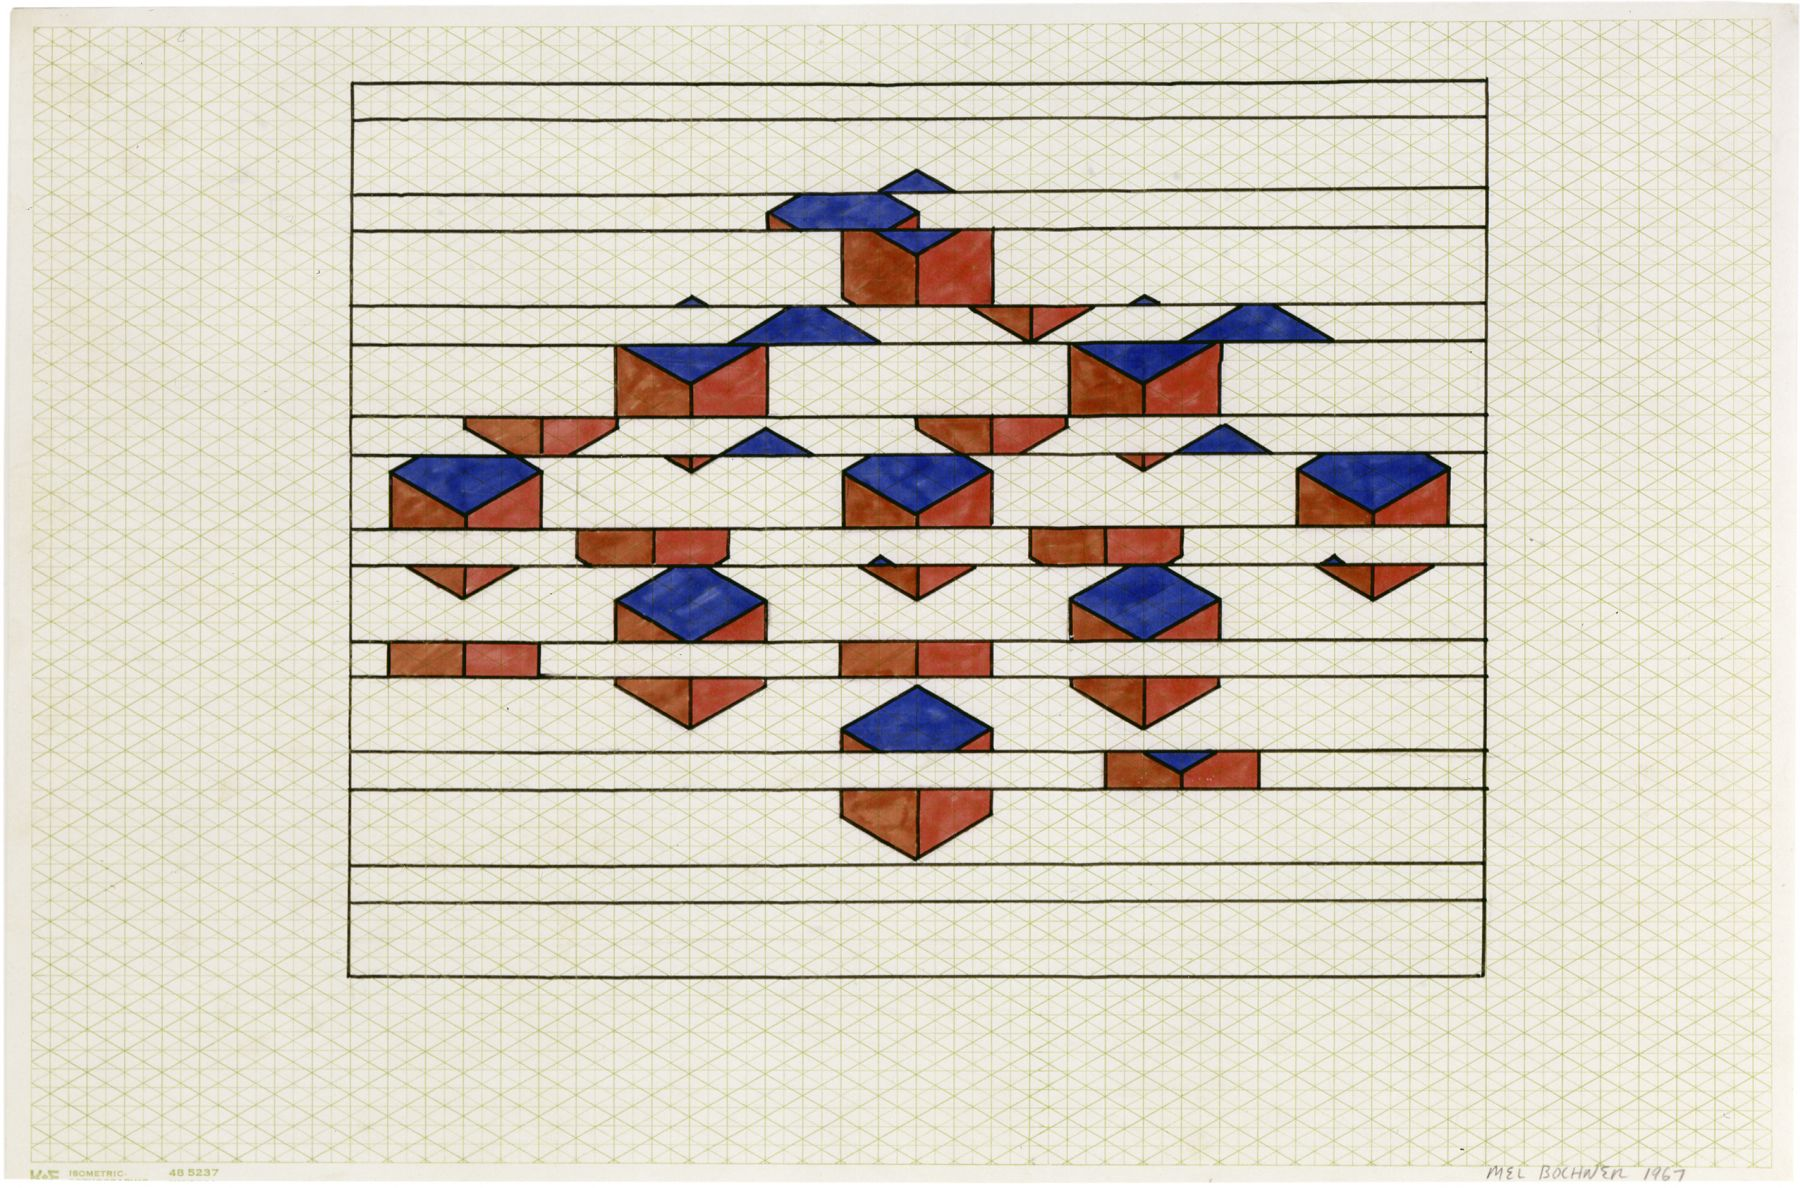 Mel Bochner,Constants and Variables: Horizontal Striations, 1967. Ink, felt tip pen, and pencil on graph paper, 13 x 19 inches.